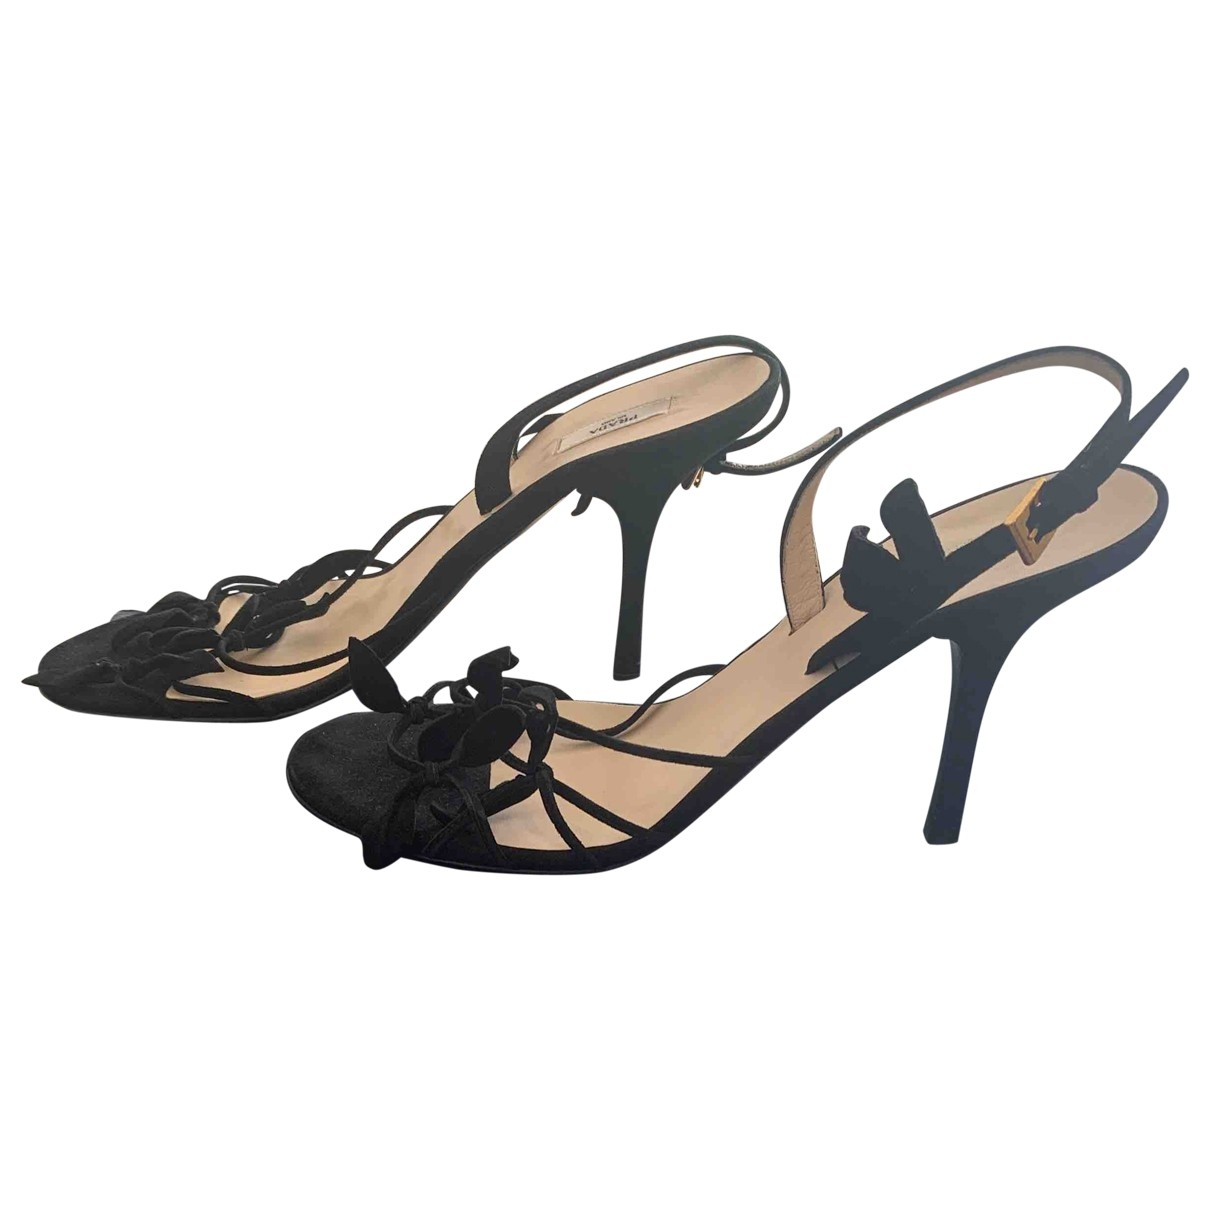 Prada \N Black Velvet Sandals for Women 39 EU